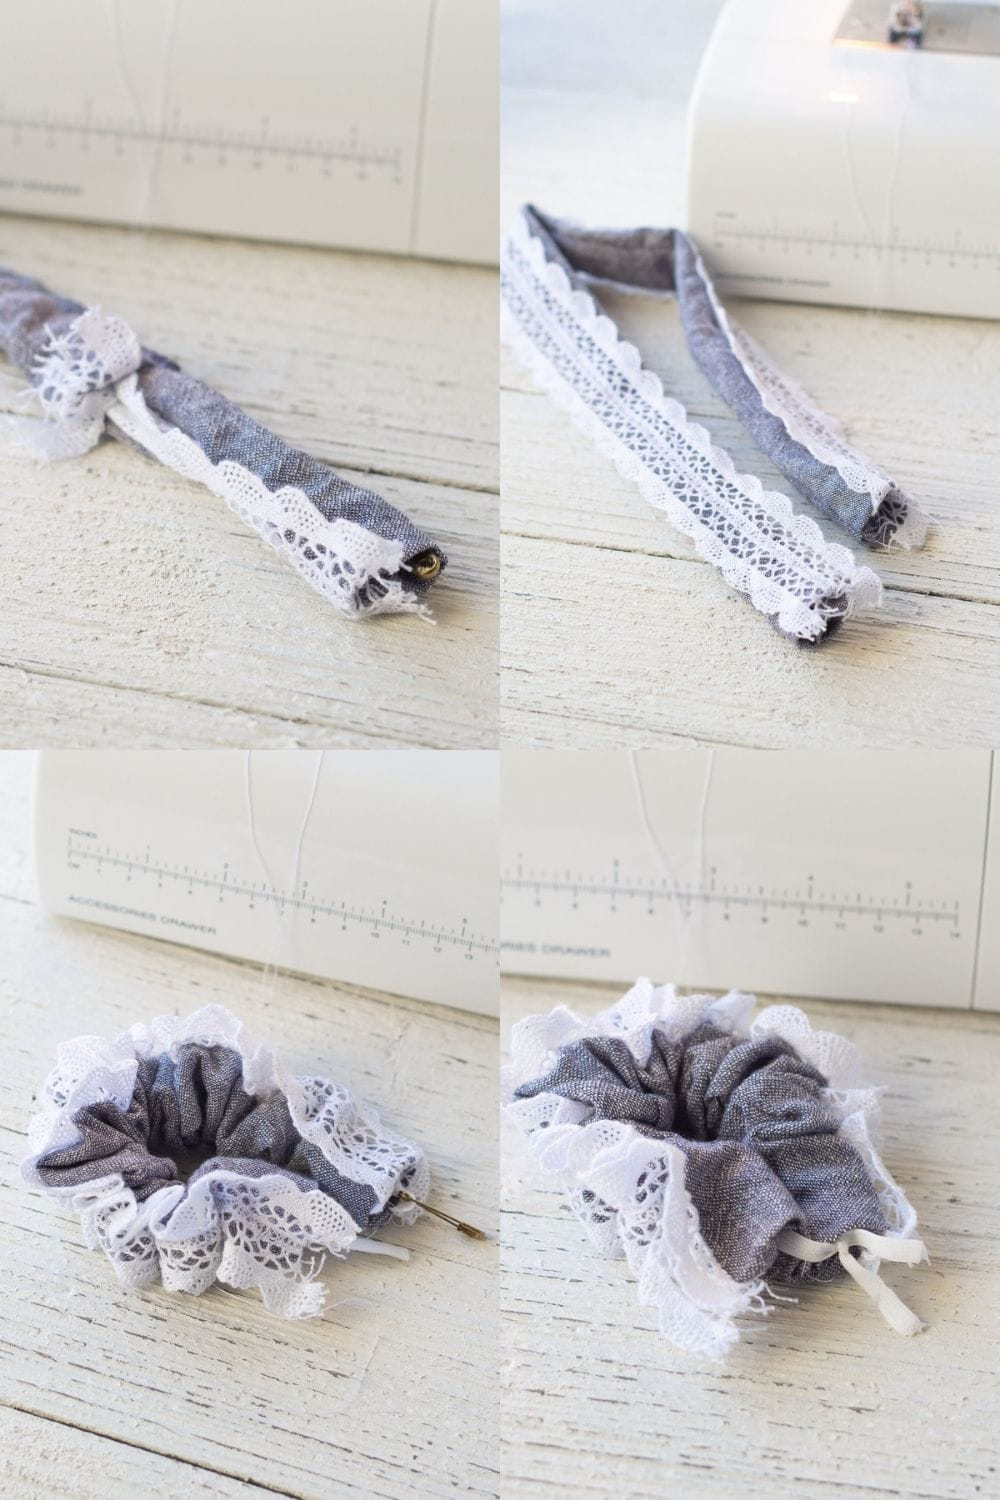 Step-by-step photos of how to sew a scrunchie with lace trim.